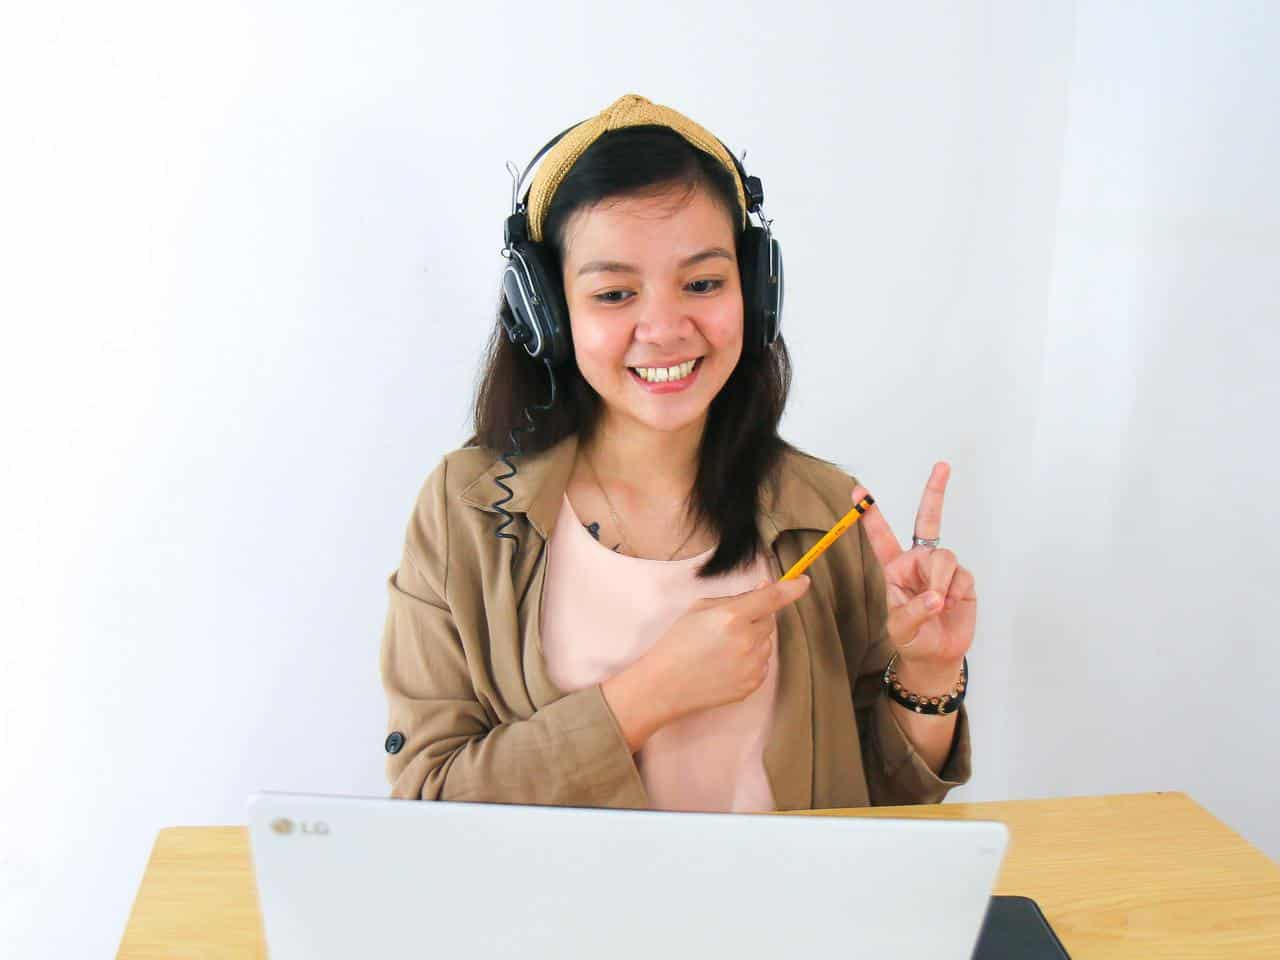 Woman showing peace sign to laptop camera